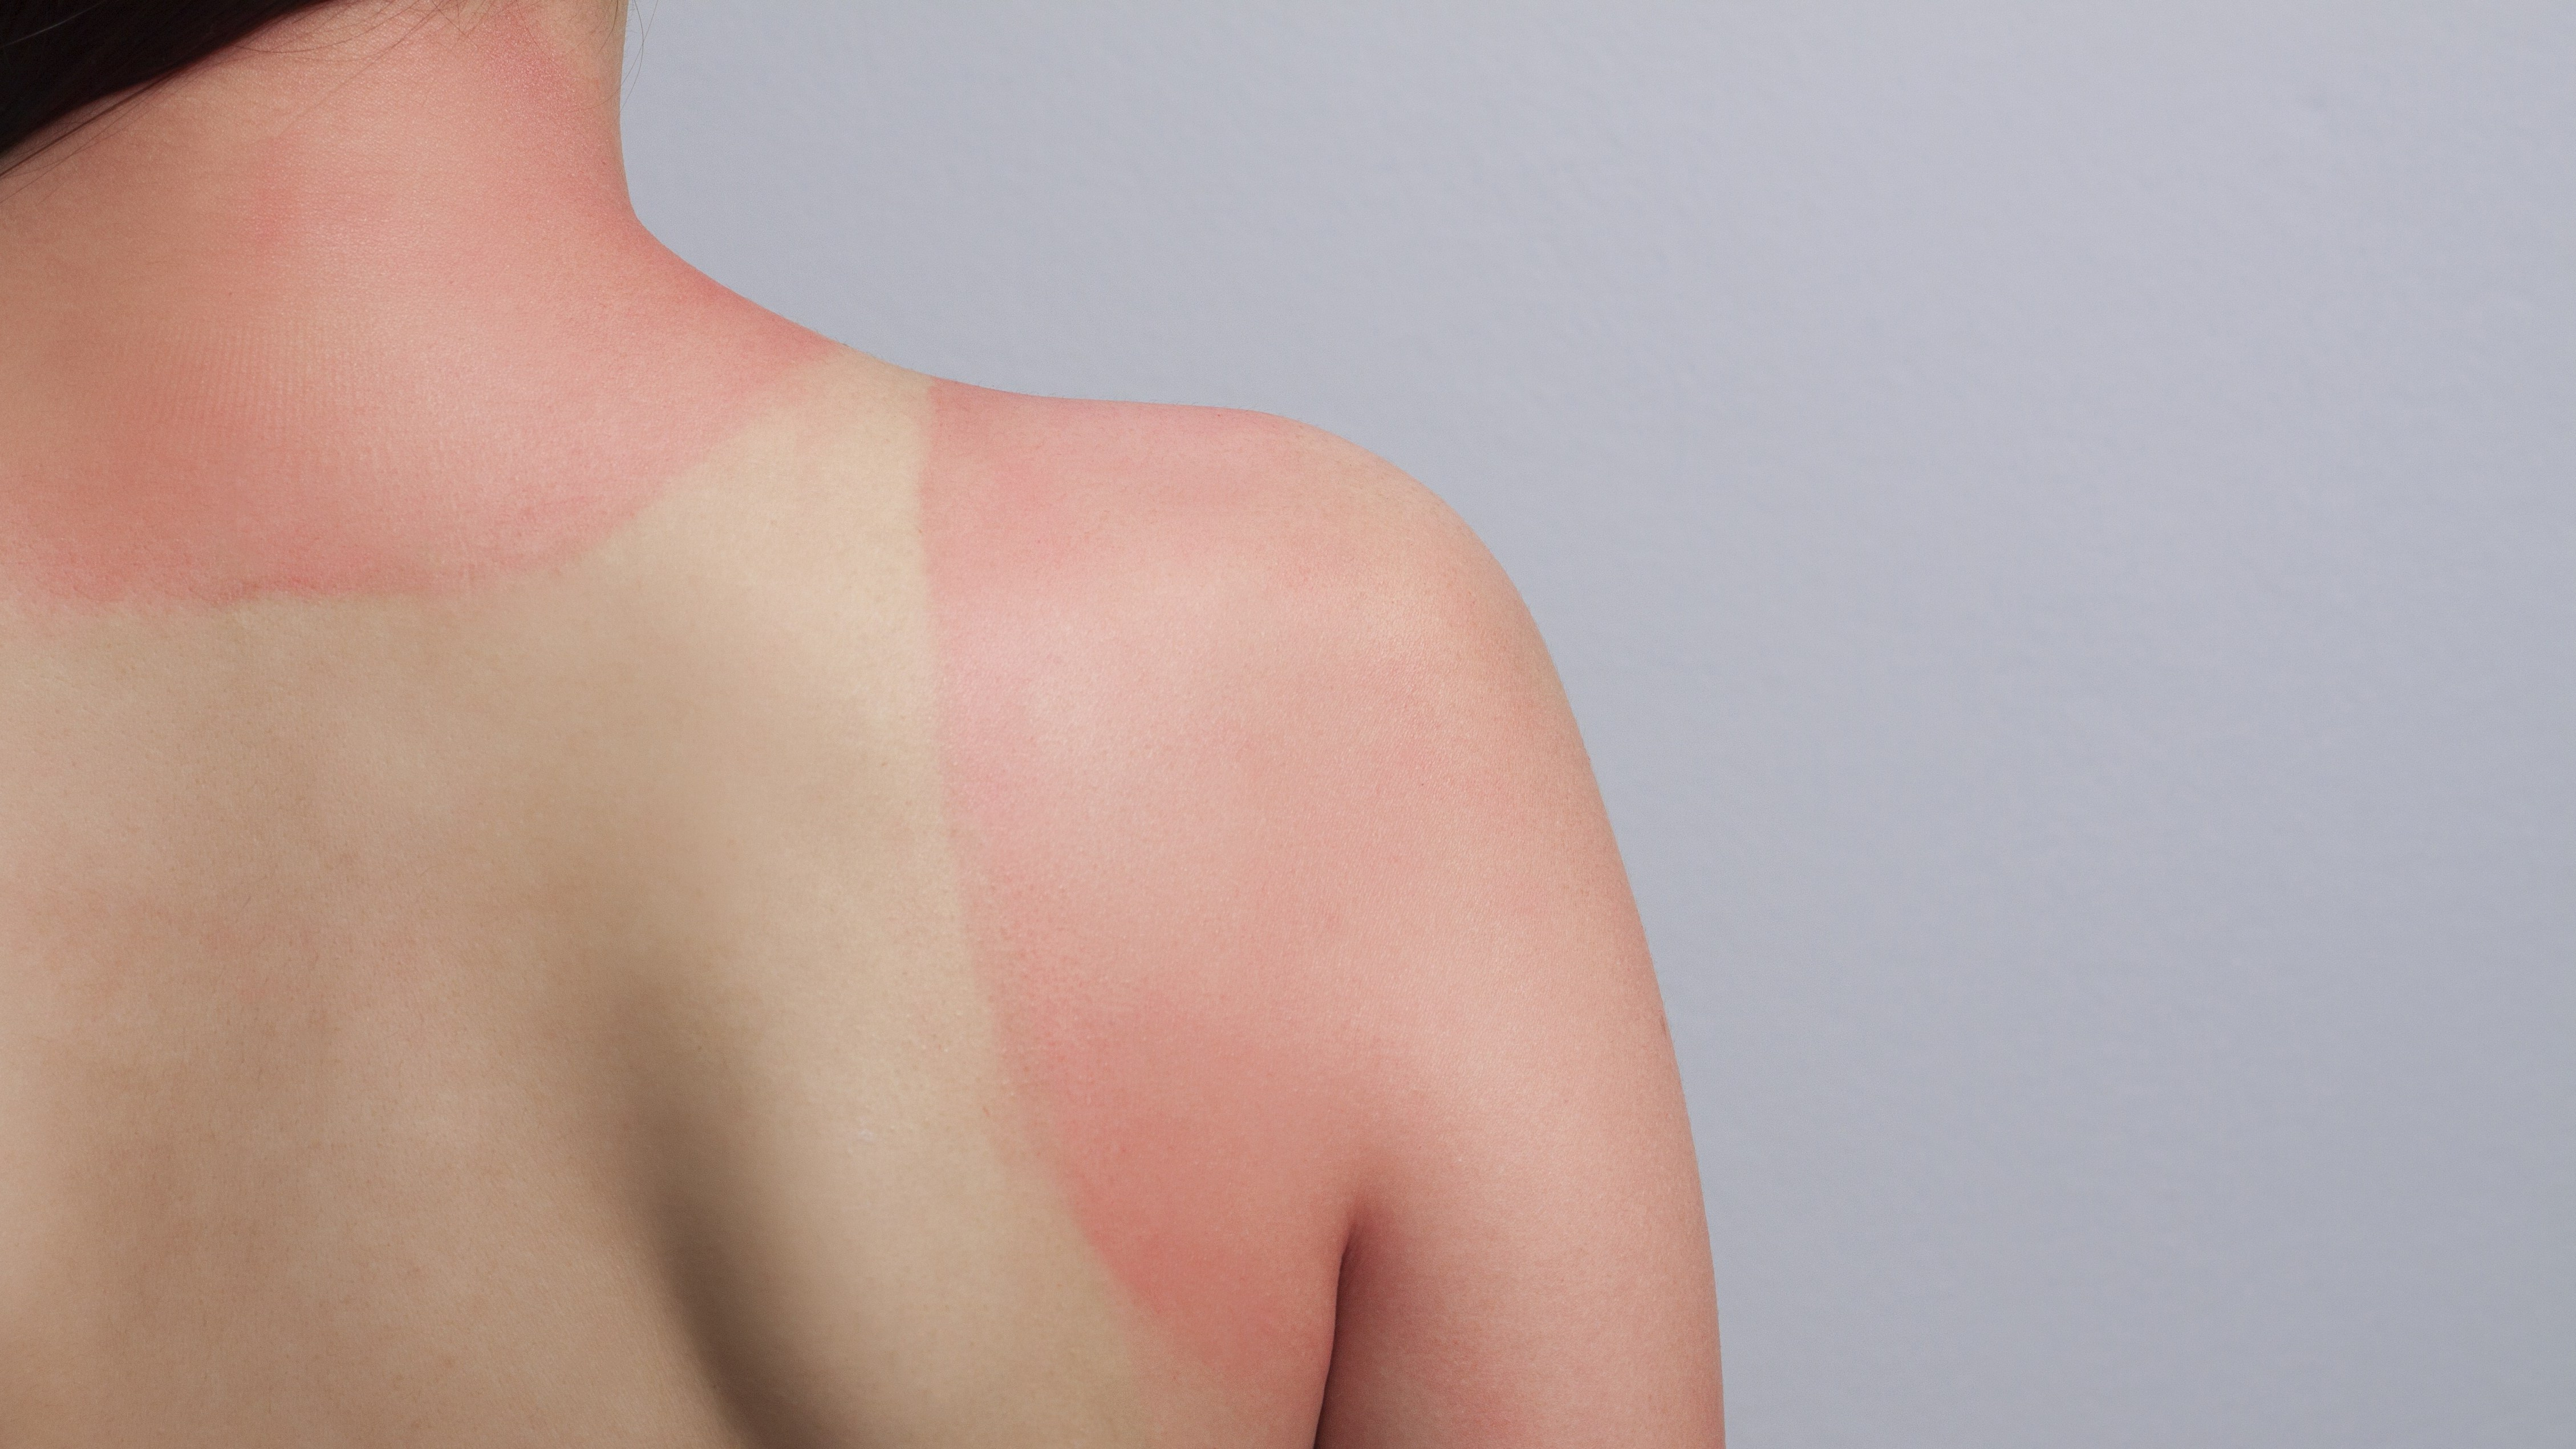 Easy-To-Pick Solutions For Painful Sunburns